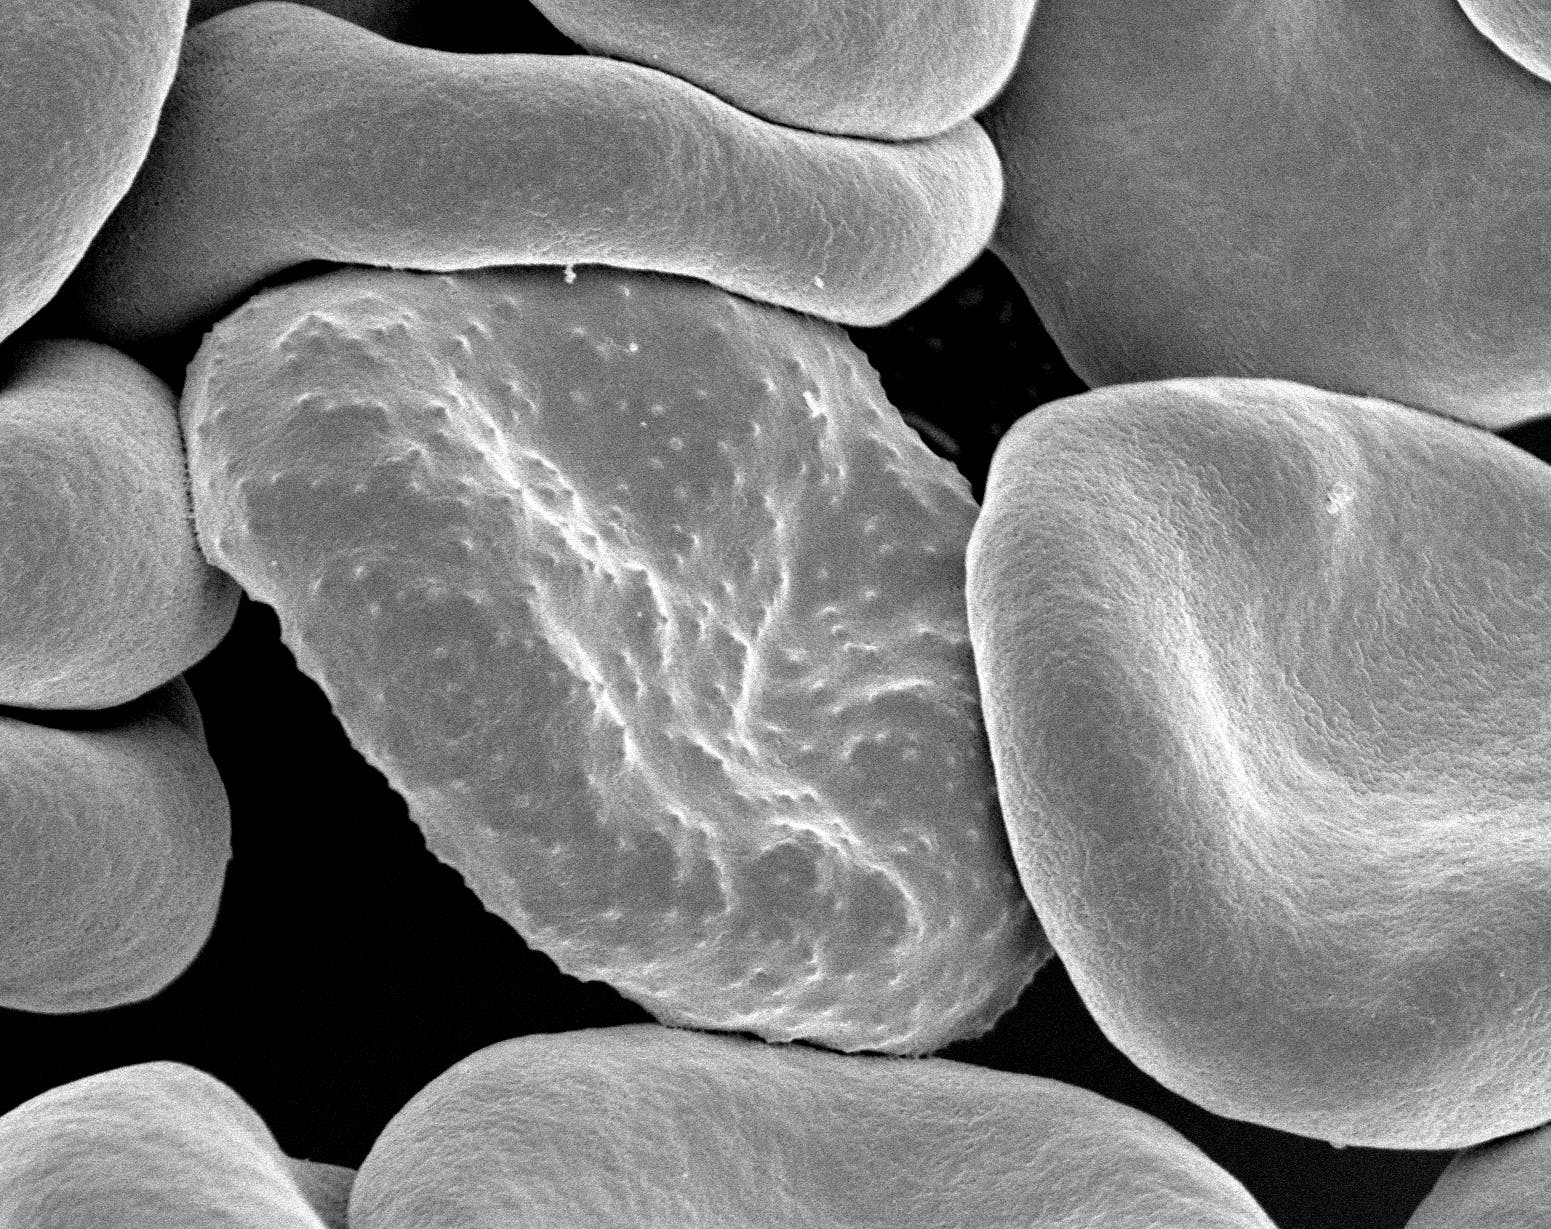 Red blood cells infected with Plasmodium falciparum, the parasite that causes malaria in humans. During its development, the parasite forms protrusions called 'knobs' on the surface of its host red blood cell which enable it to avoid destruction and cause inflammation.